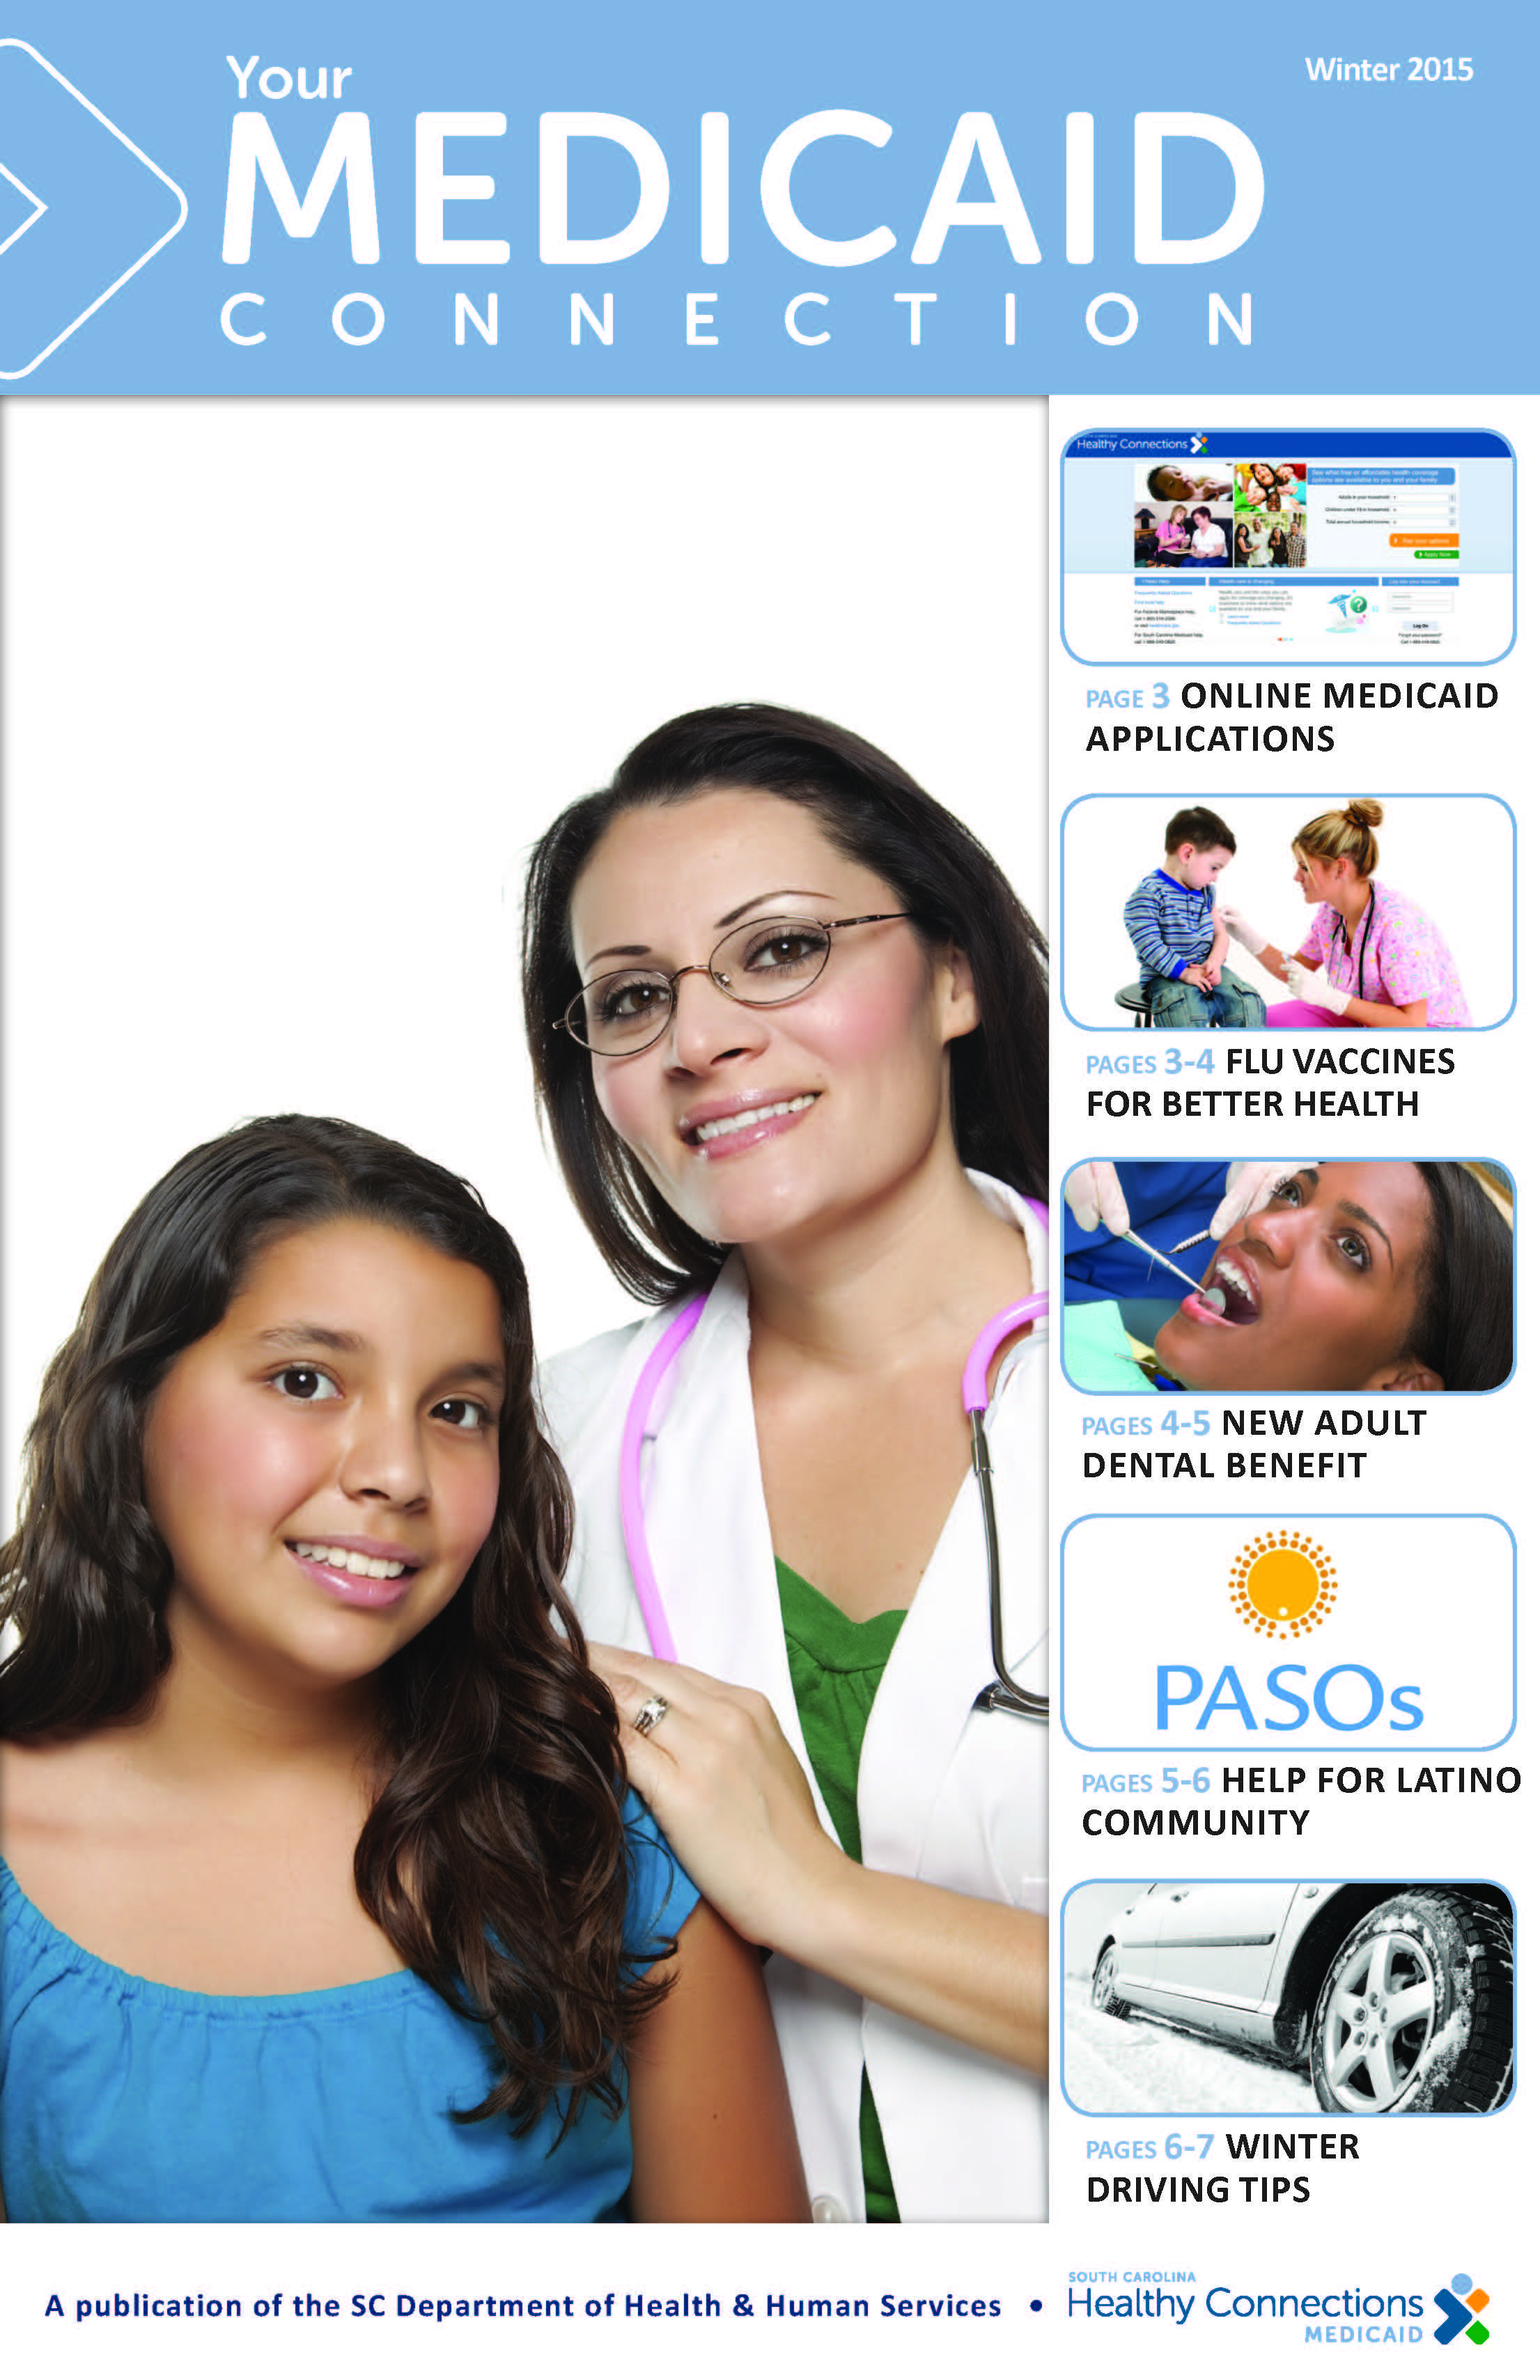 Read the Winter 2015 edition of Your Medicaid Connection, @SCMedicaid's member newsletter: http://ow.ly/JxnSD